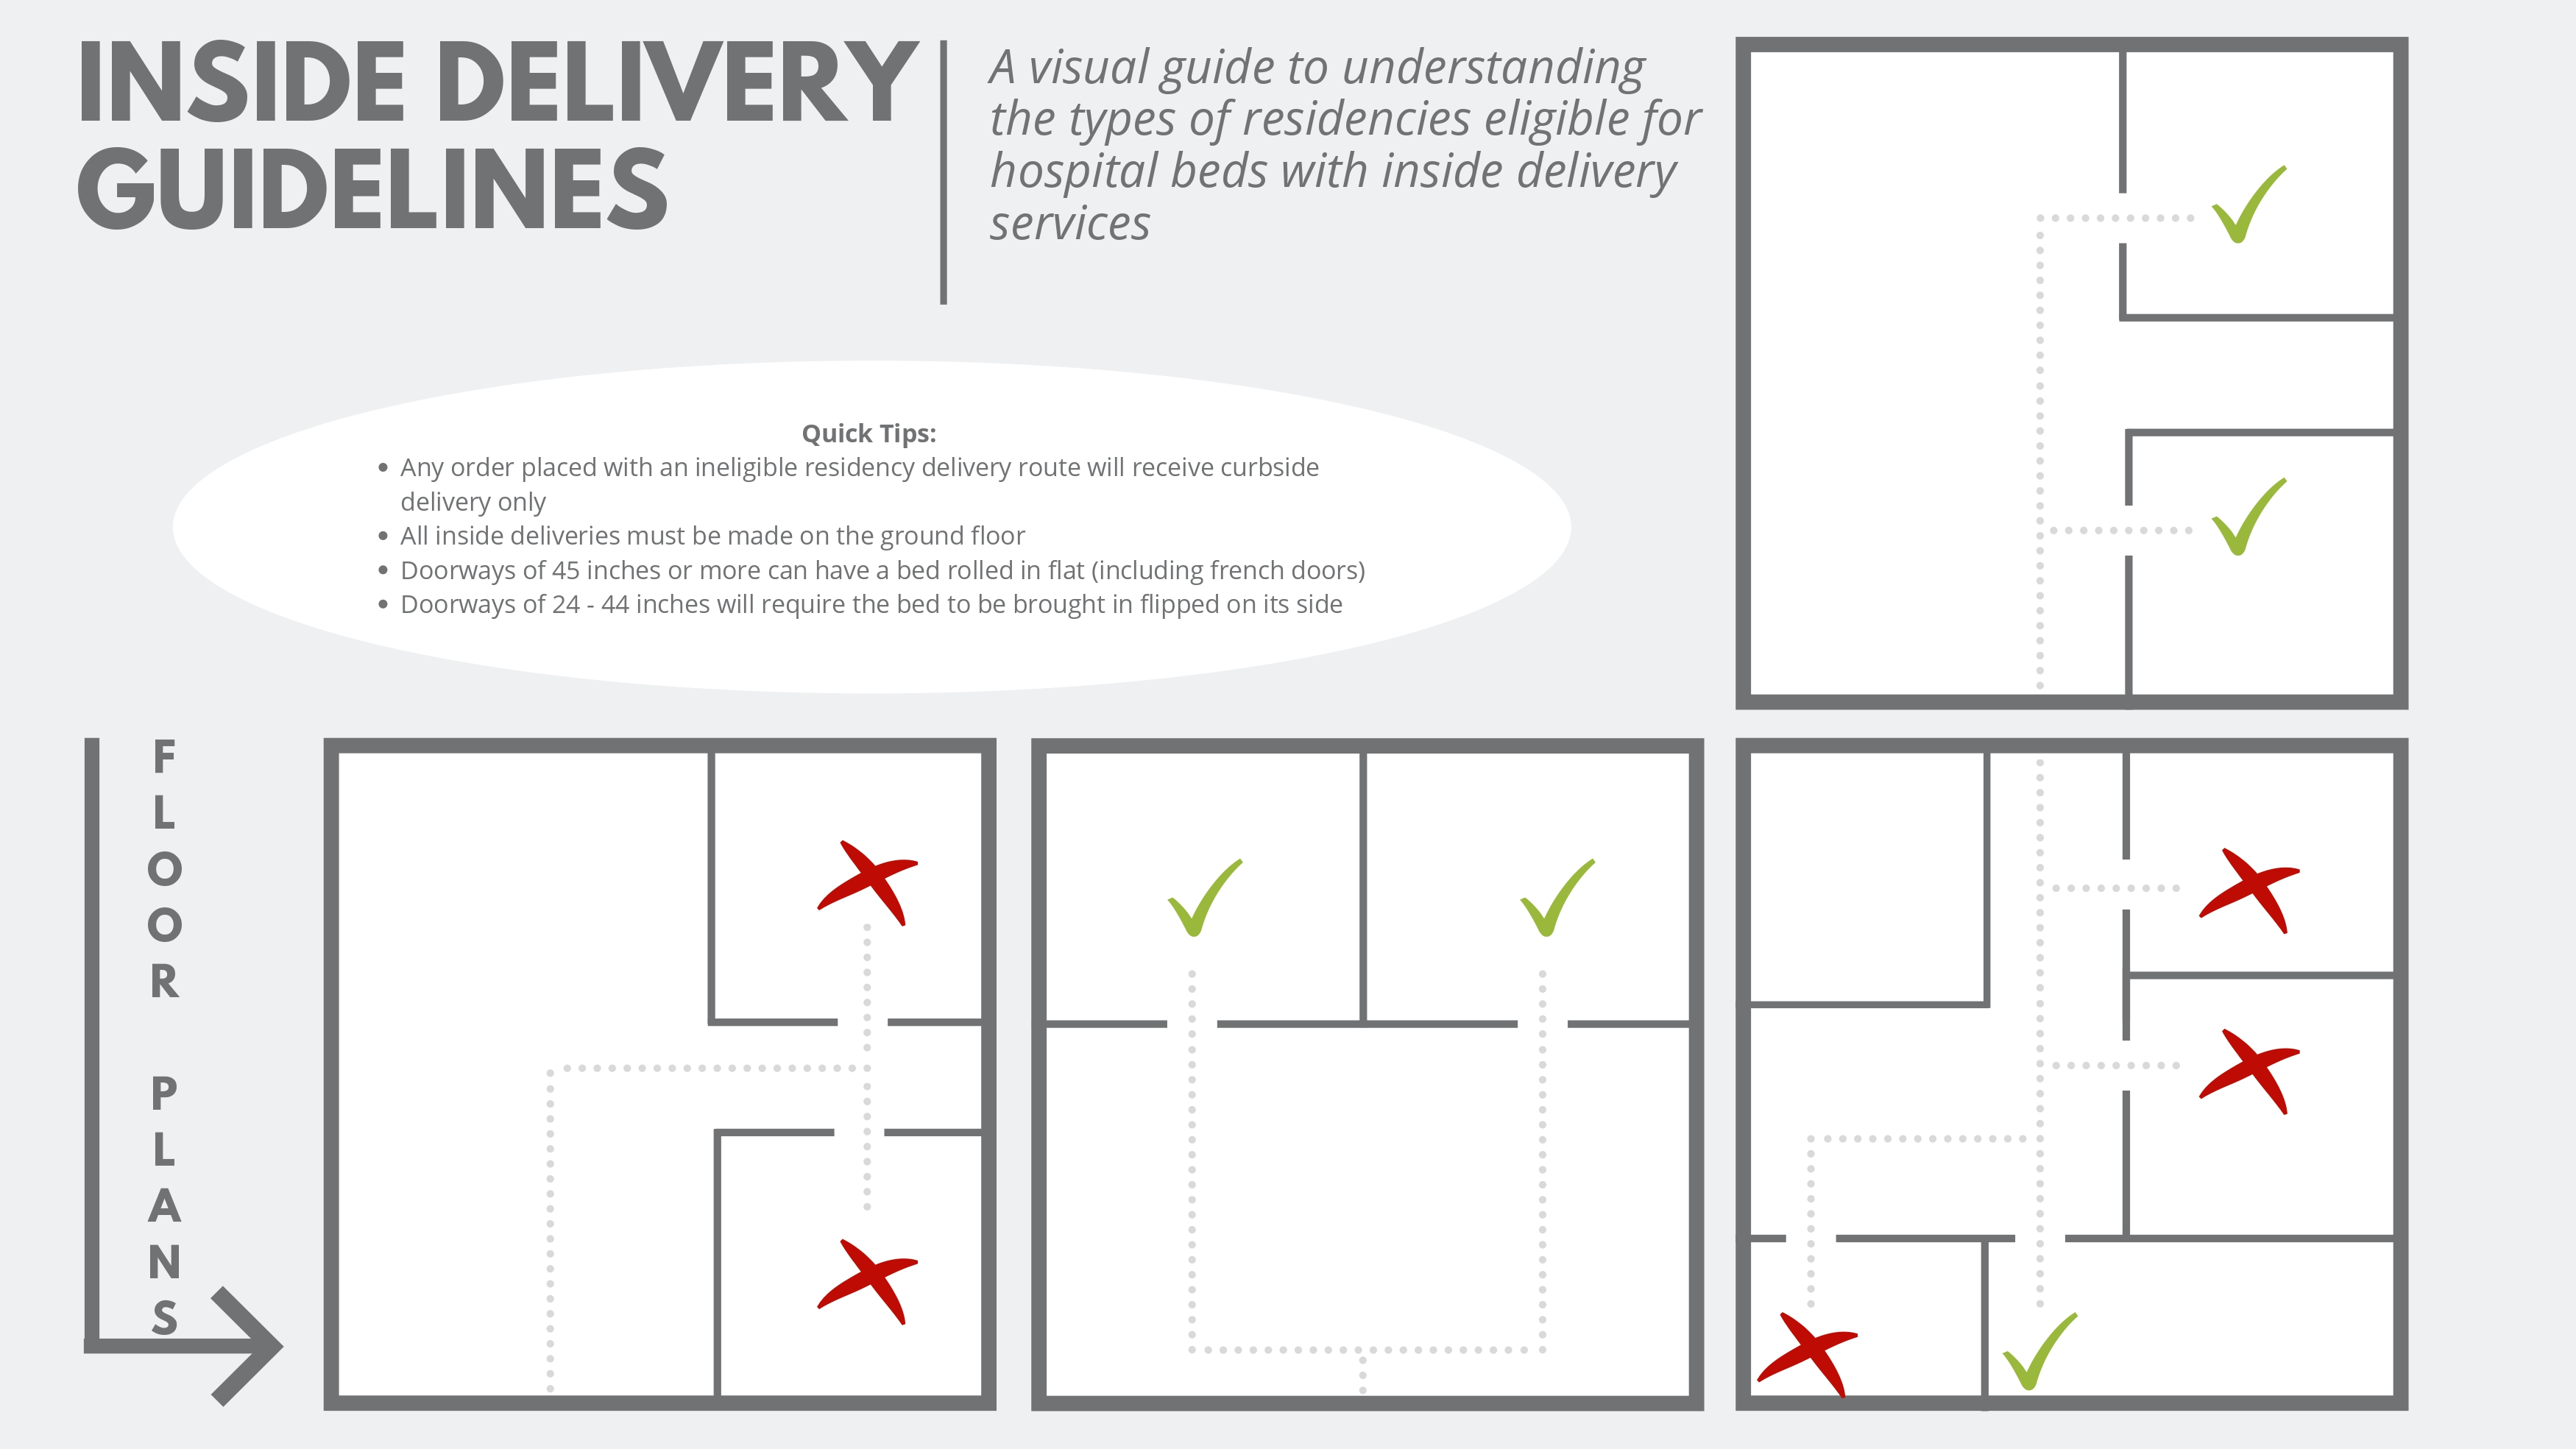 inside-delivery-guidelines-pages-to-jpg-990001.jpg